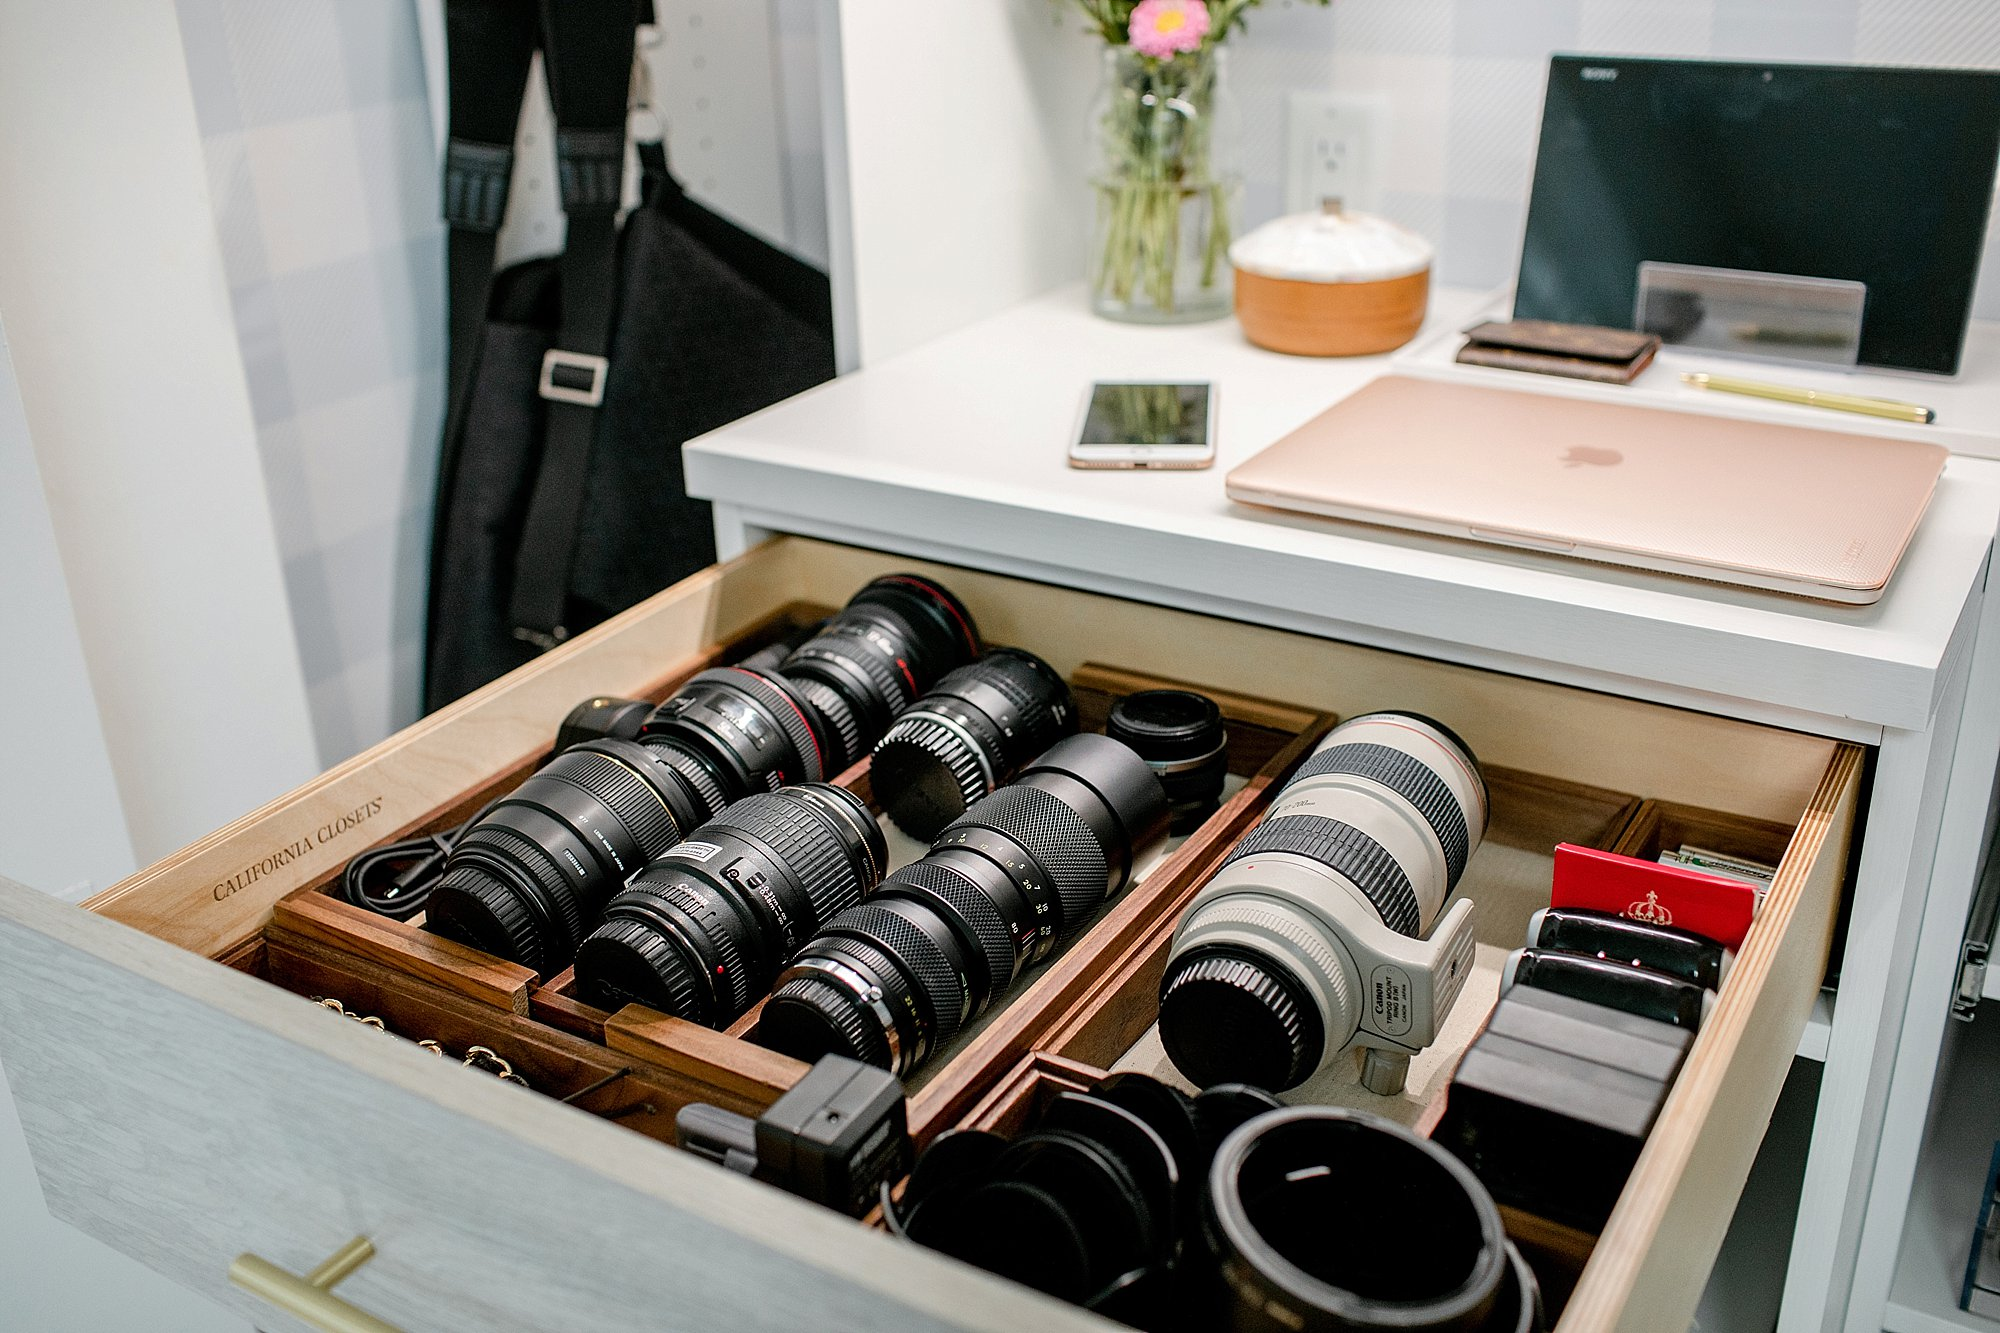 lens organization drawer putting camera lenses in drawers, see more on the blog post reveal #organization #photography #photostudio